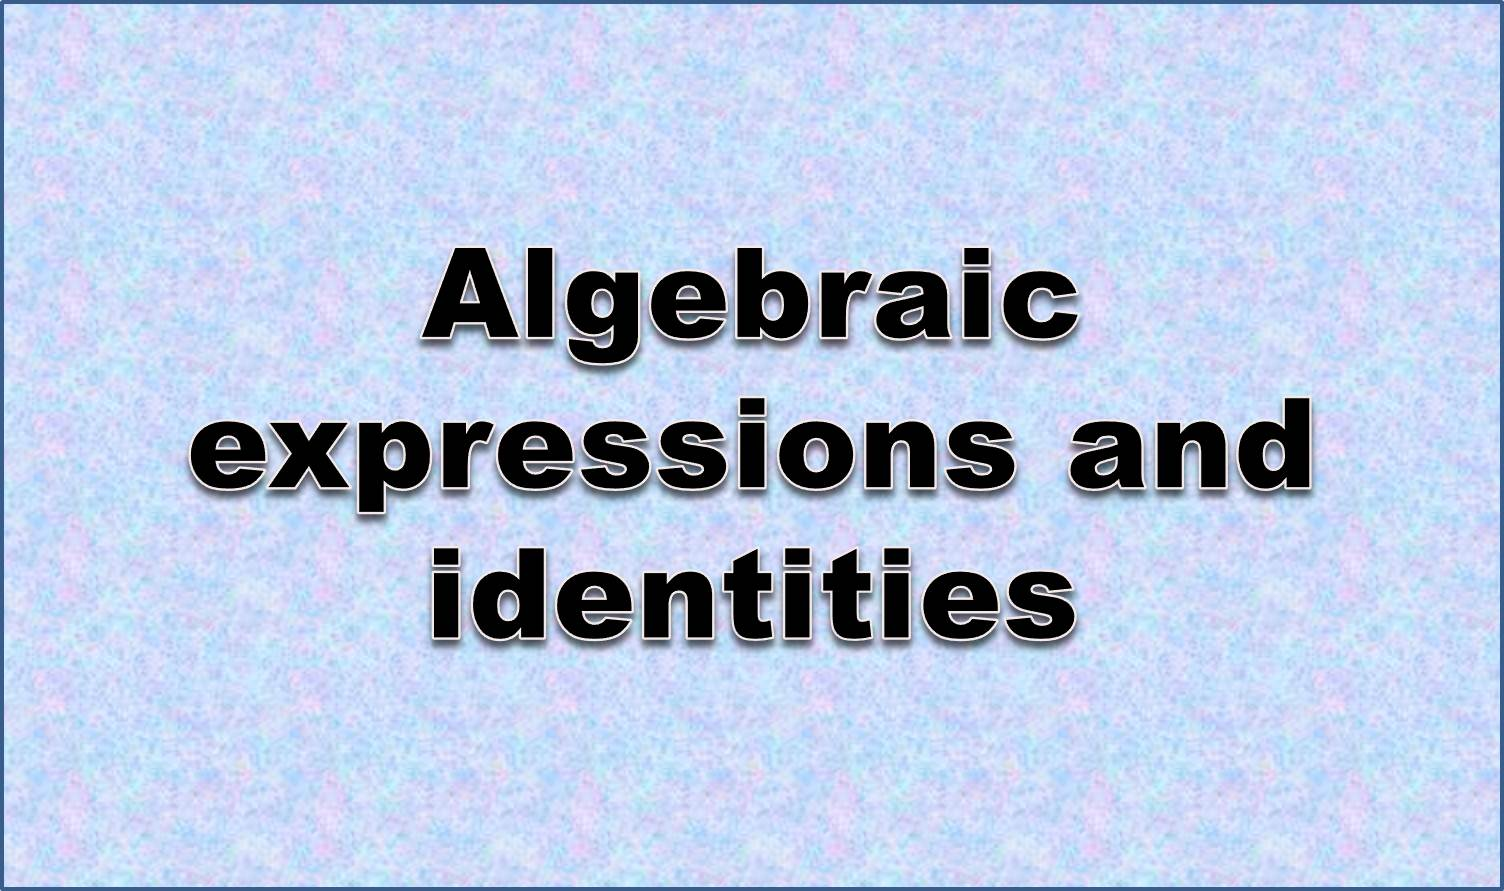 http://study.aisectonline.com/images/Algebraic expressions and identities11.jpg